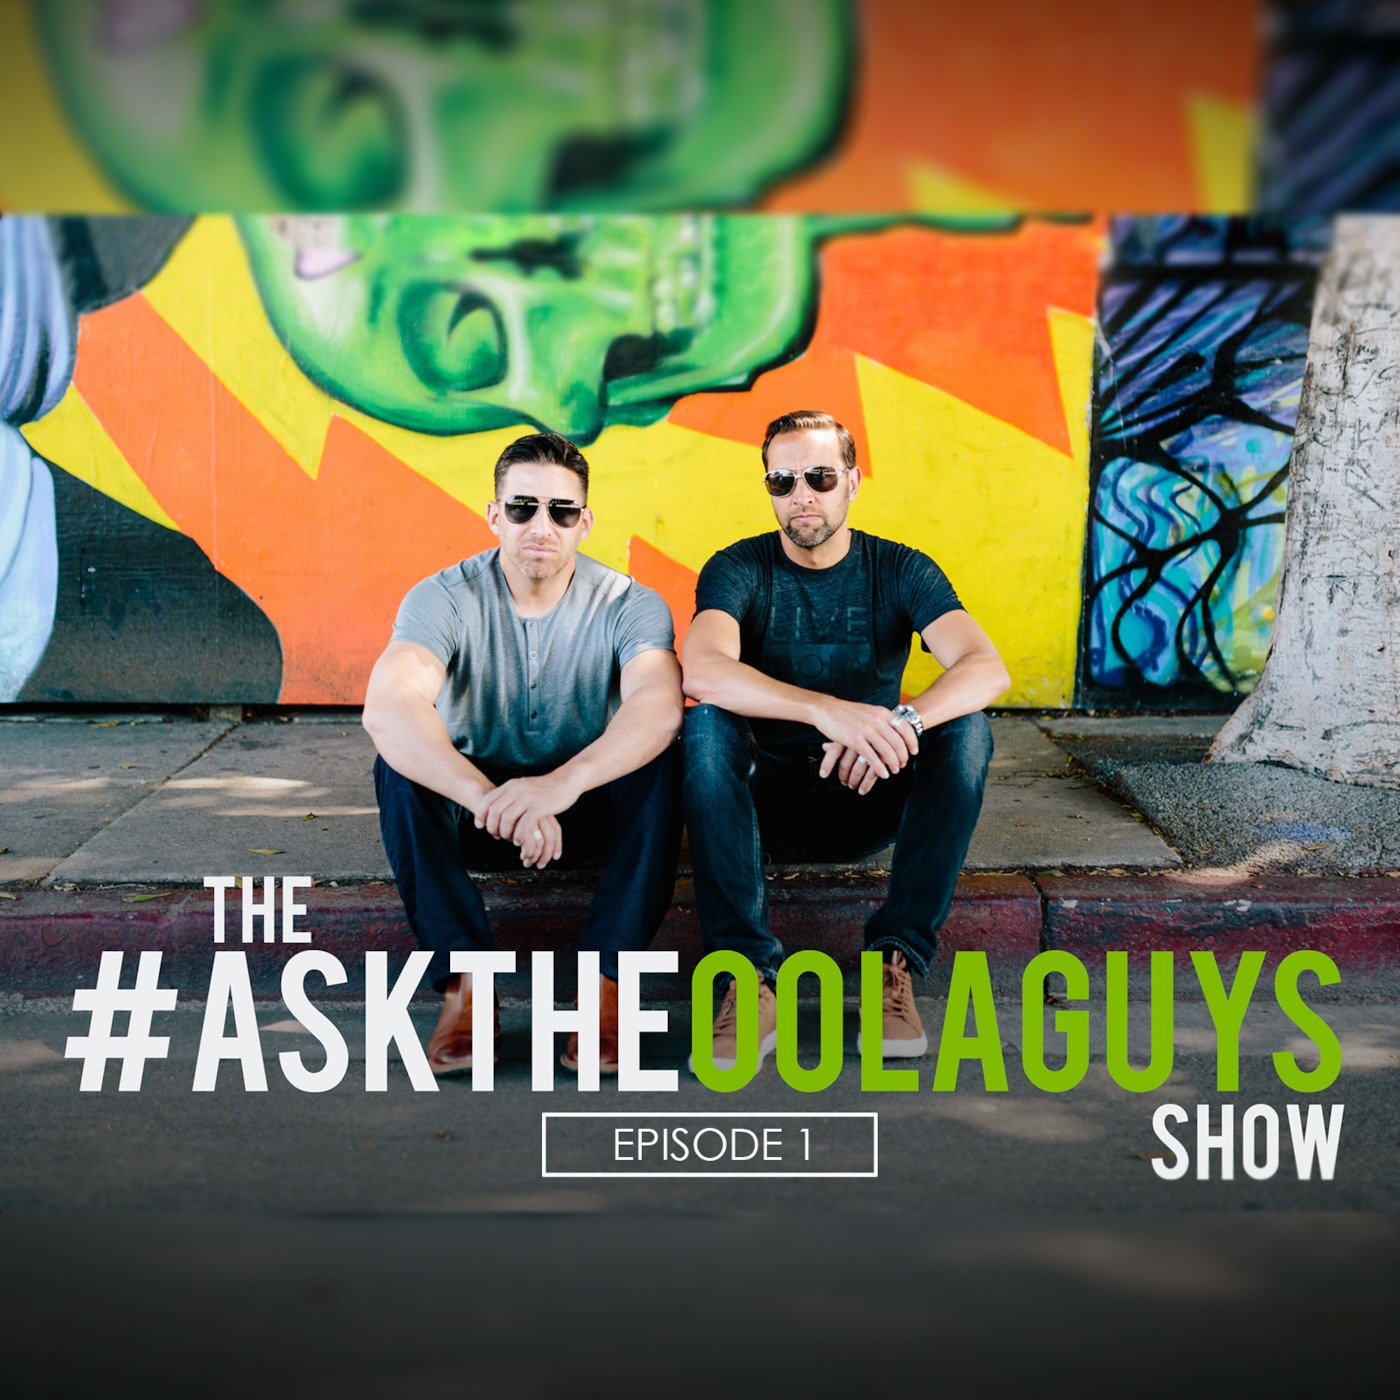 #AskTheOolaGuys Episode 1